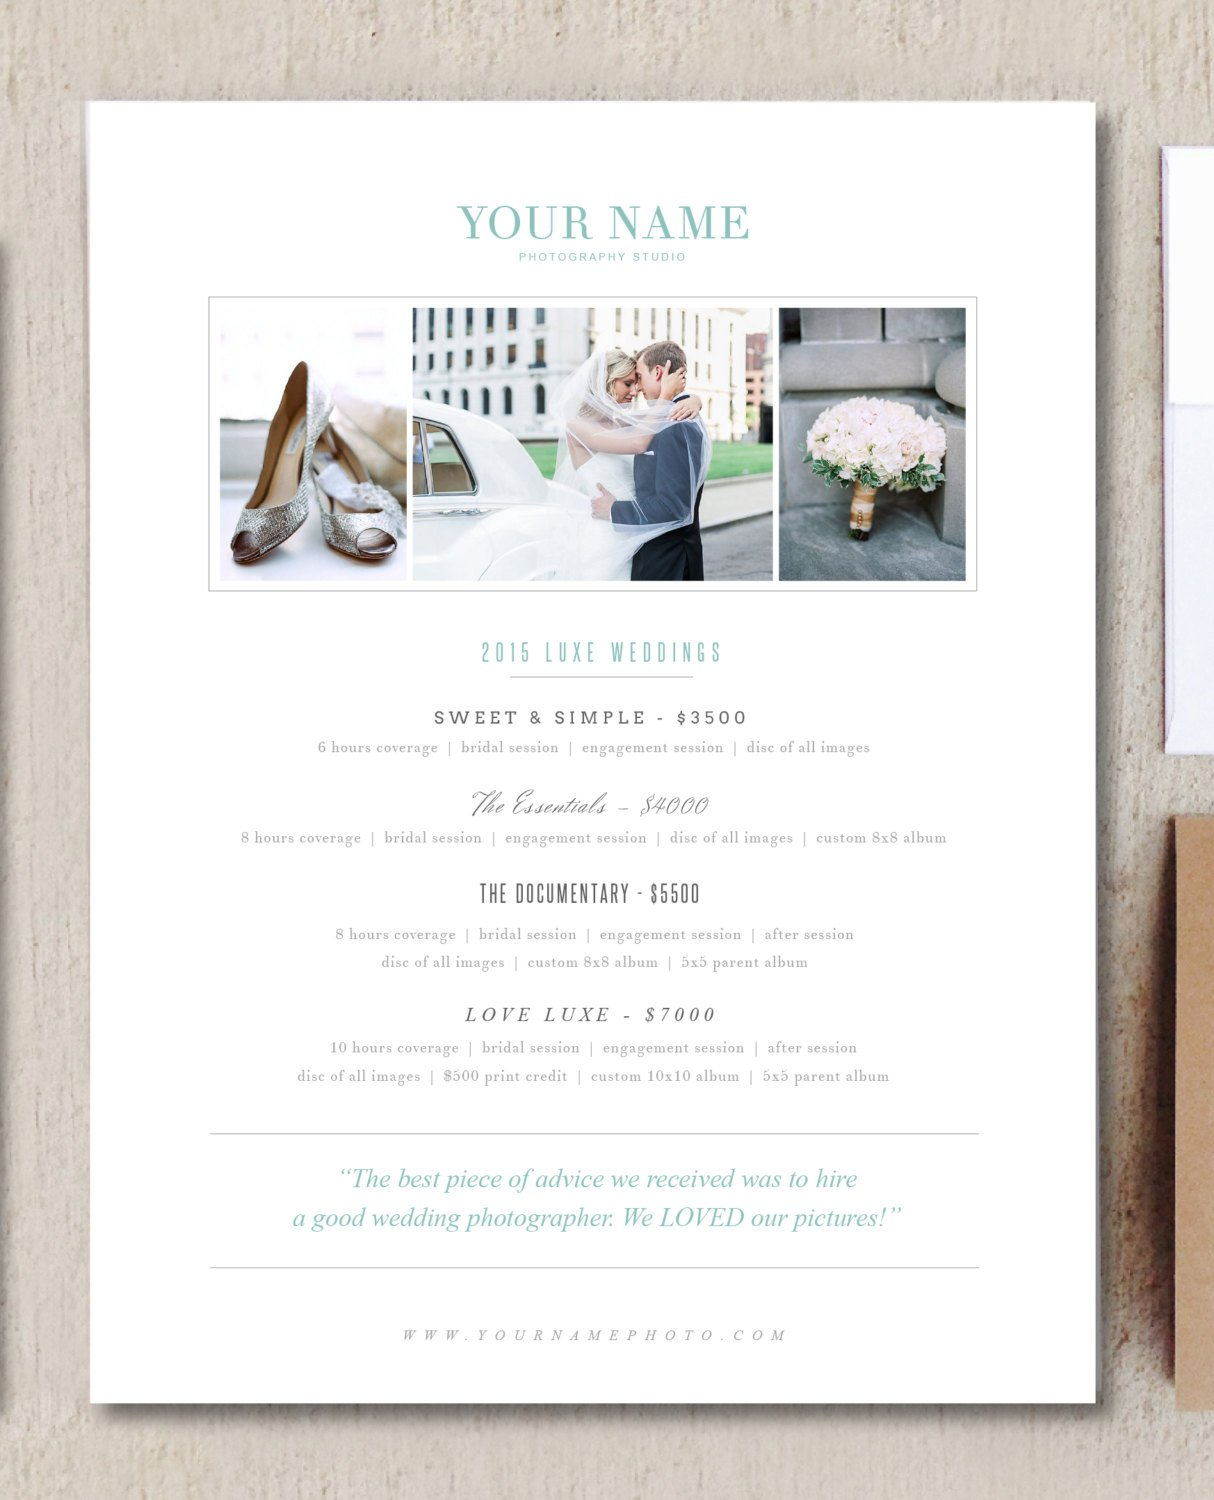 wedding photographer pricing guide brochure templates creative